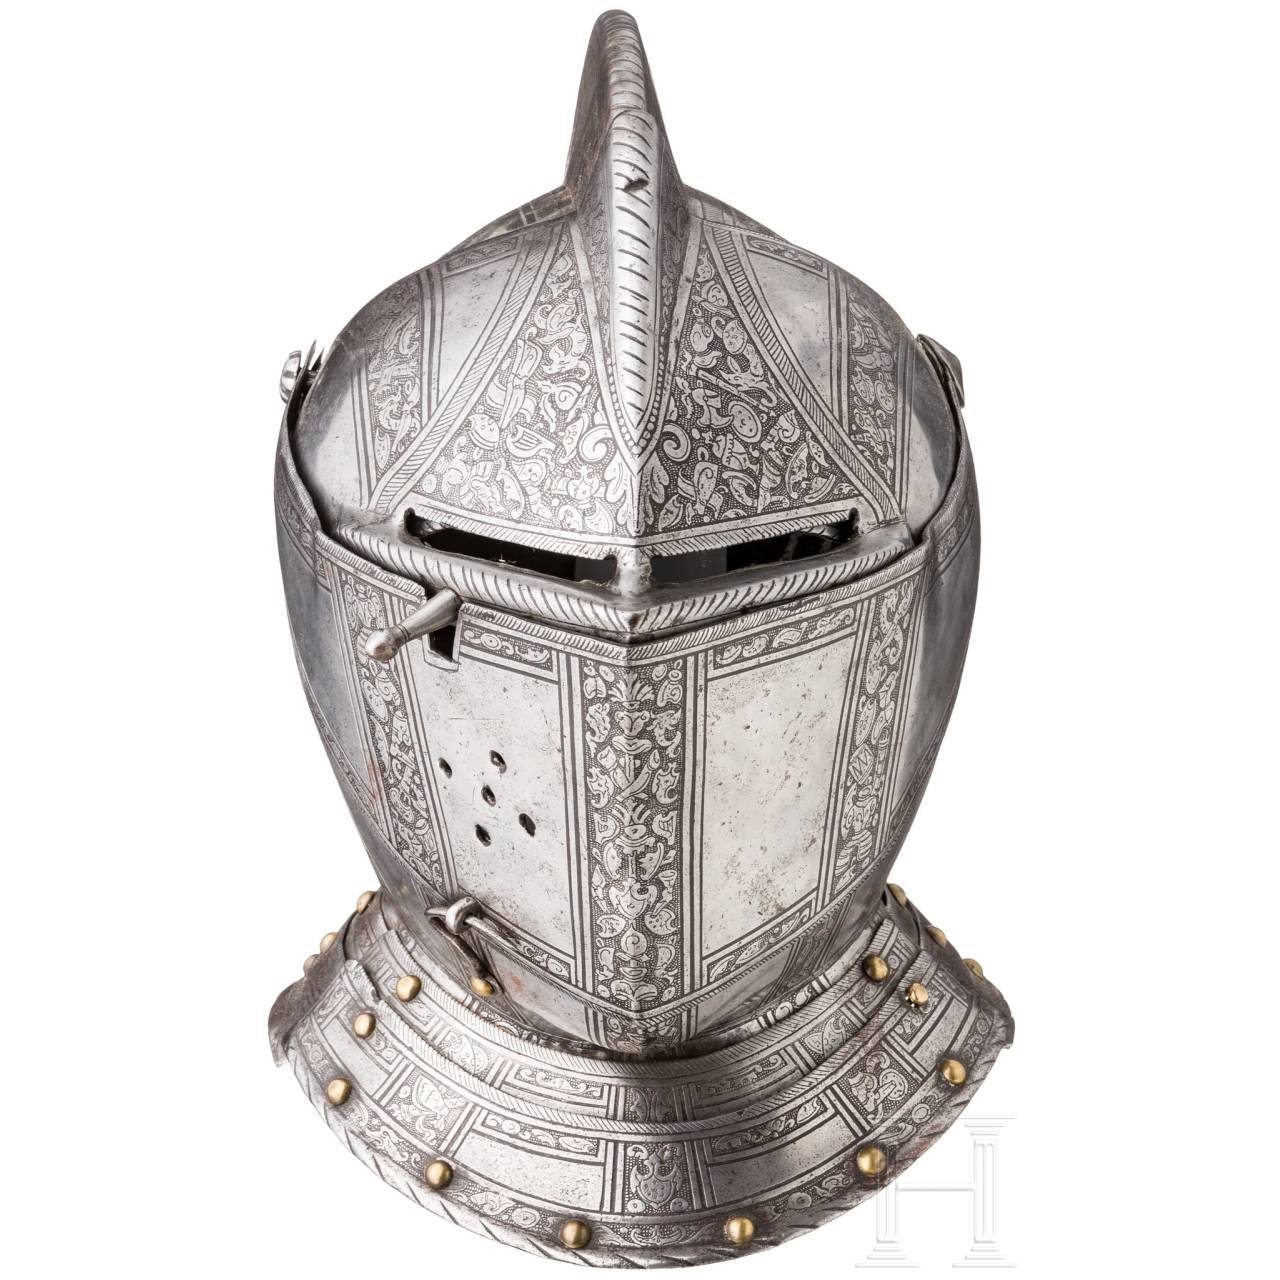 A Milanese etched armour for the field, circa 1570/80